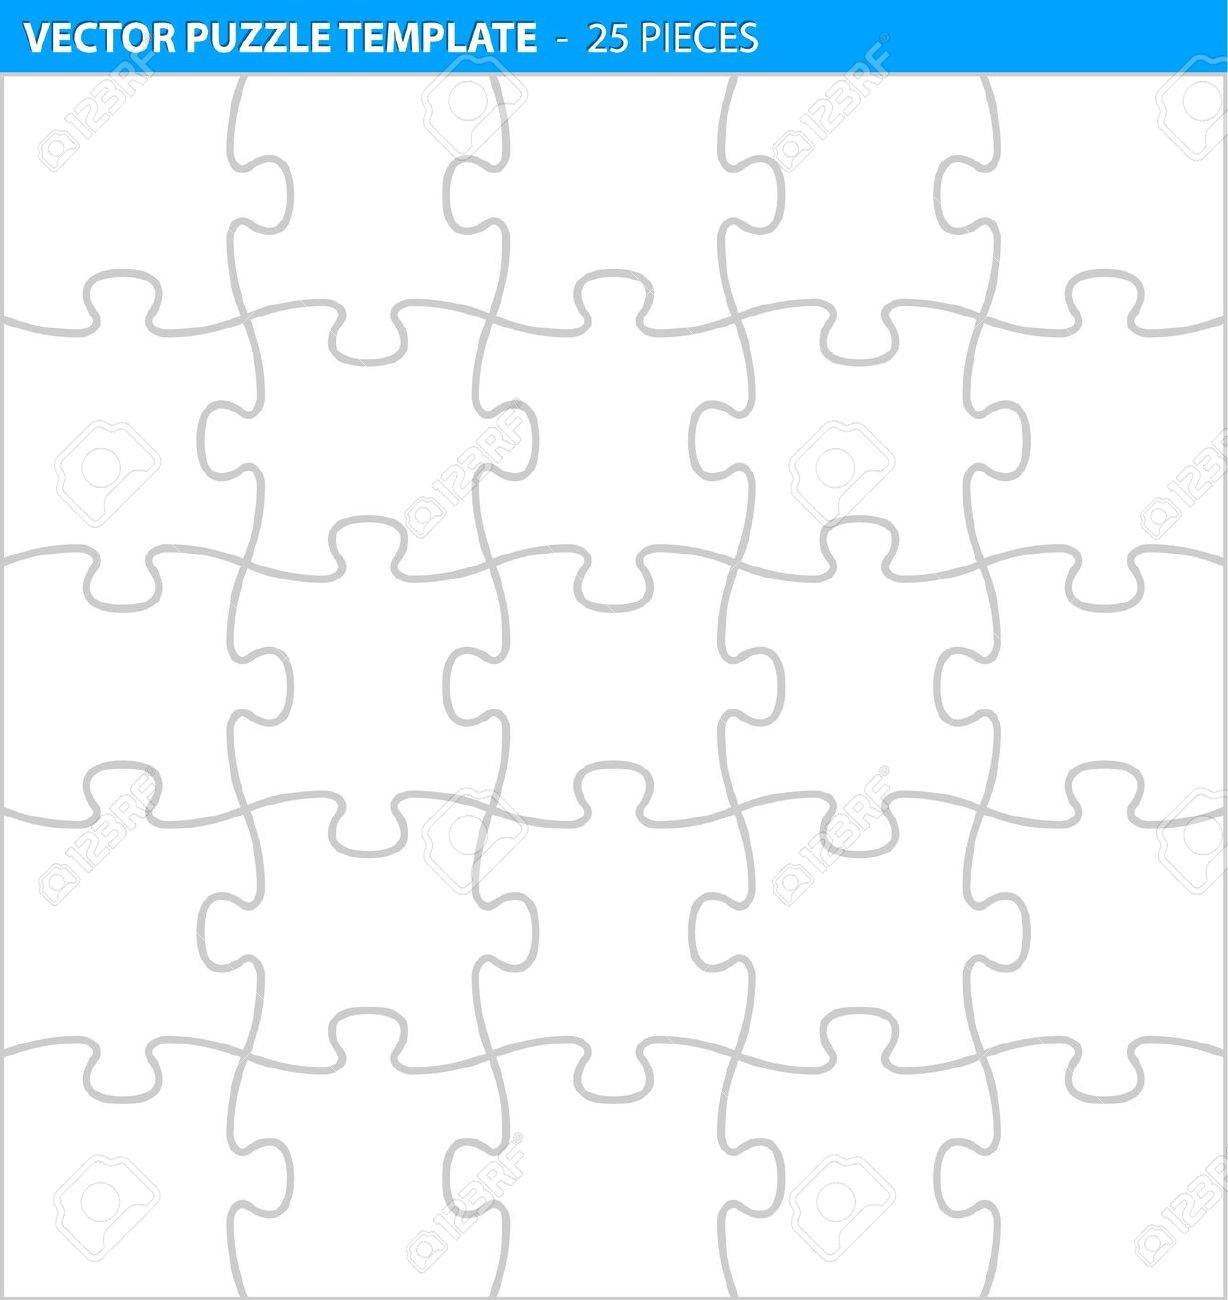 Complete Puzzle / Jigsaw Template For Print (25 Pieces) Royalty Free - Print Your Puzzle